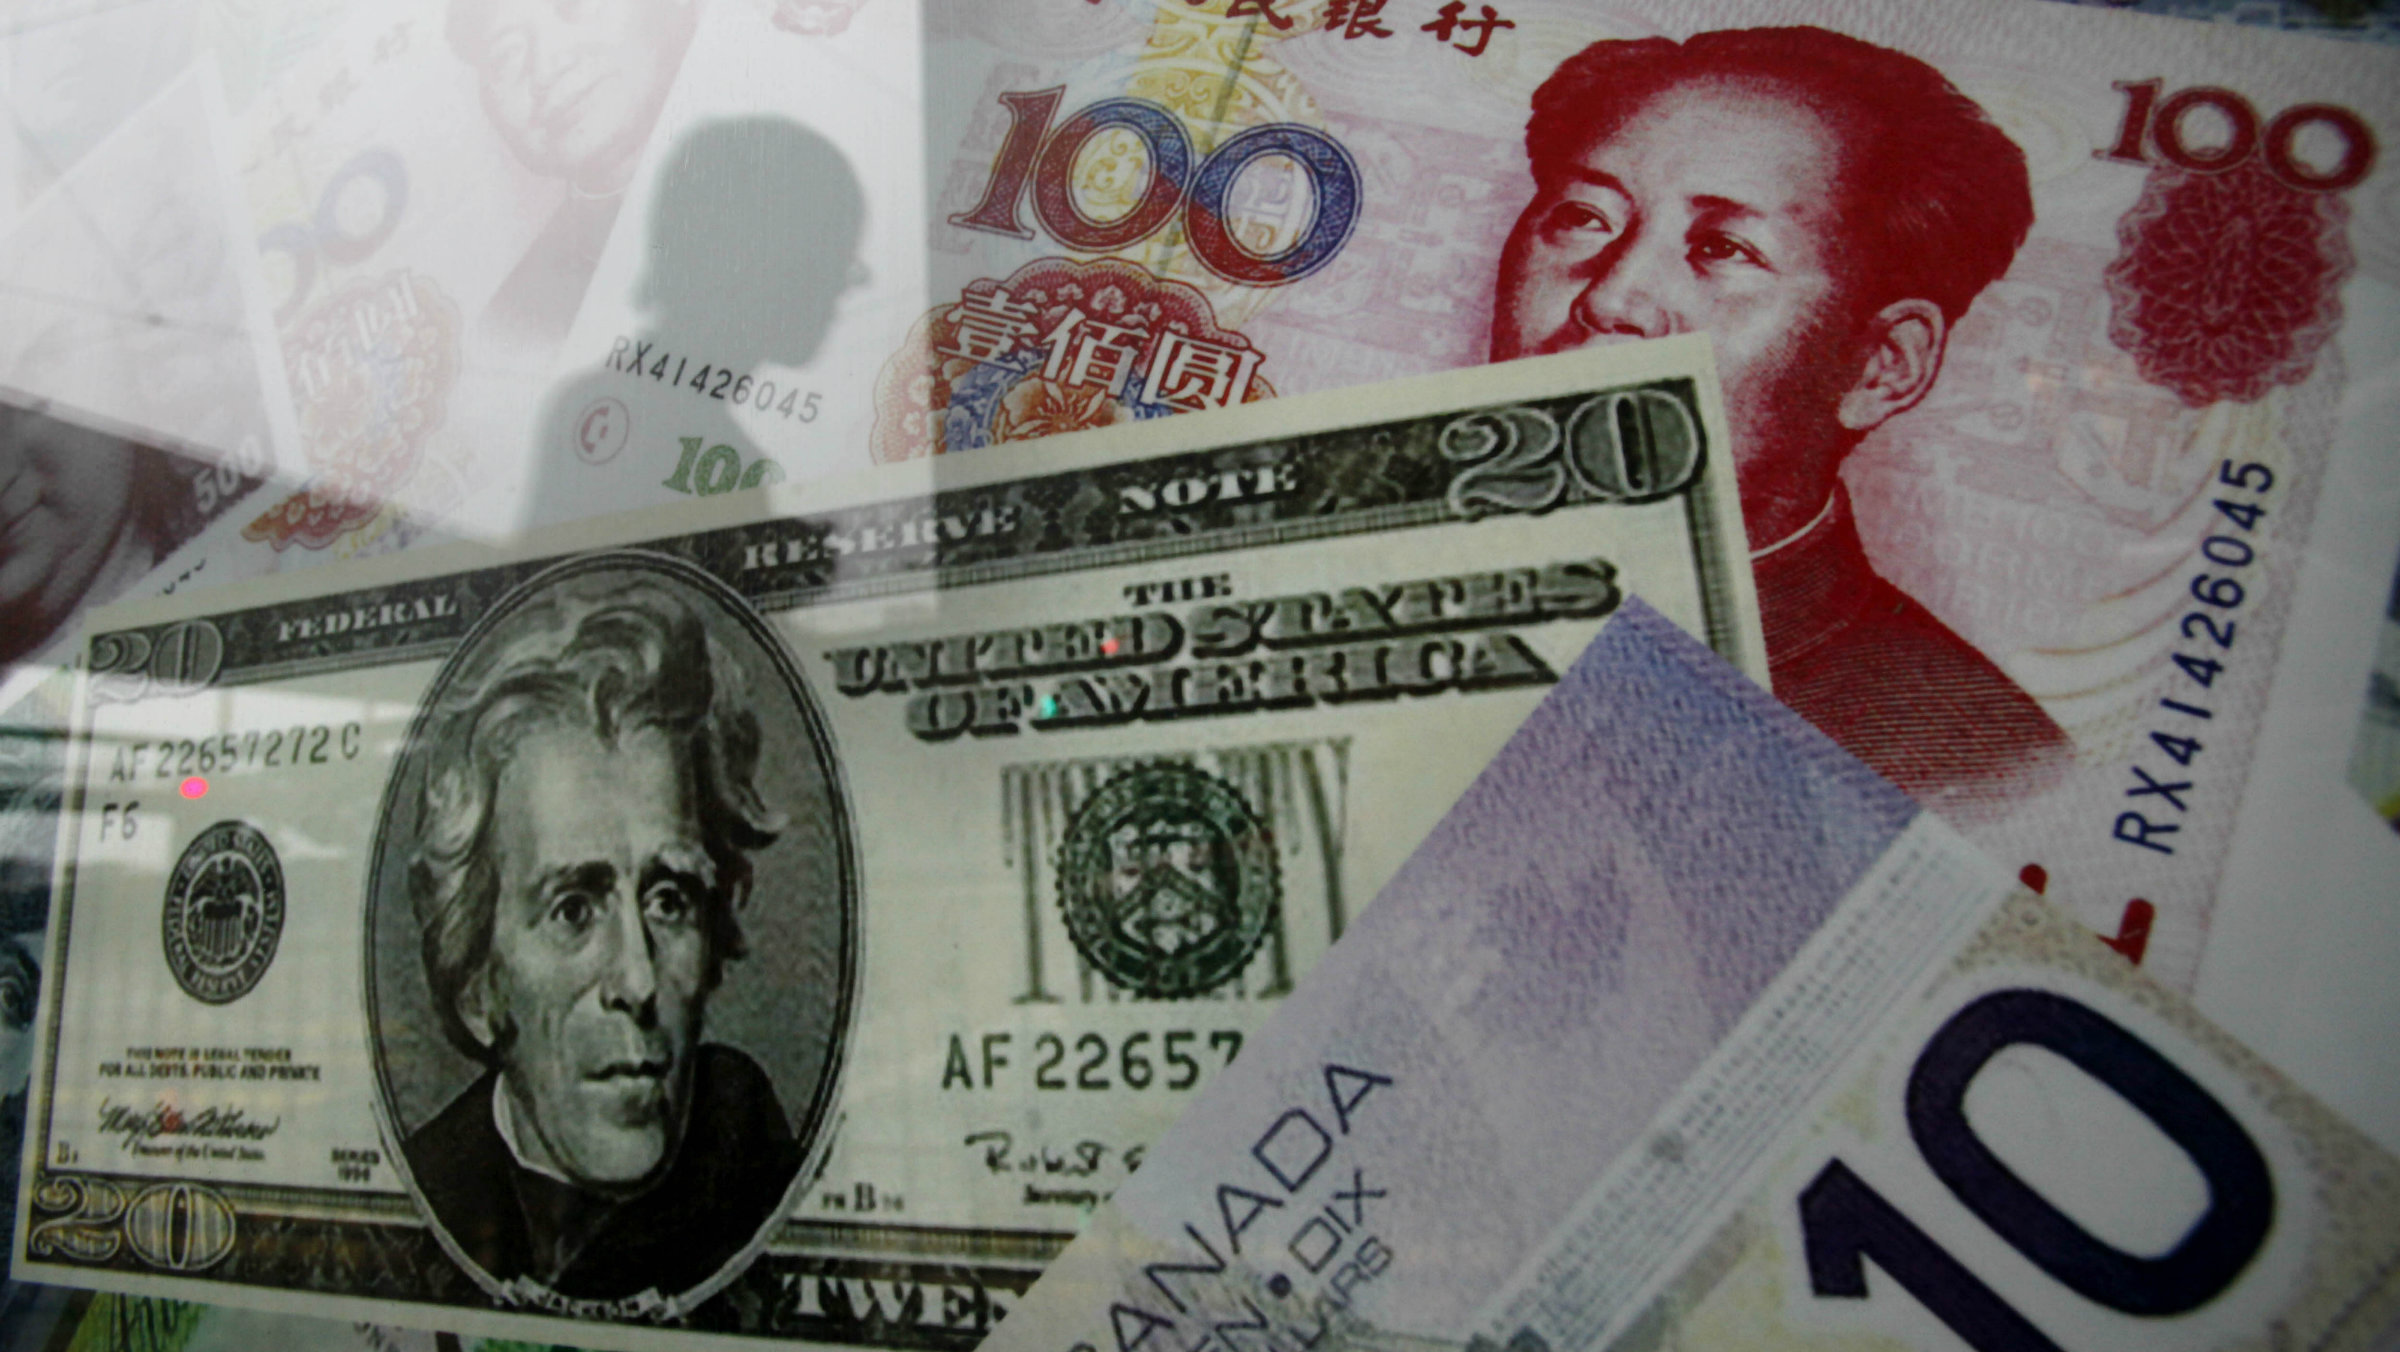 Central banks should consider subjugating the status of paper currency.